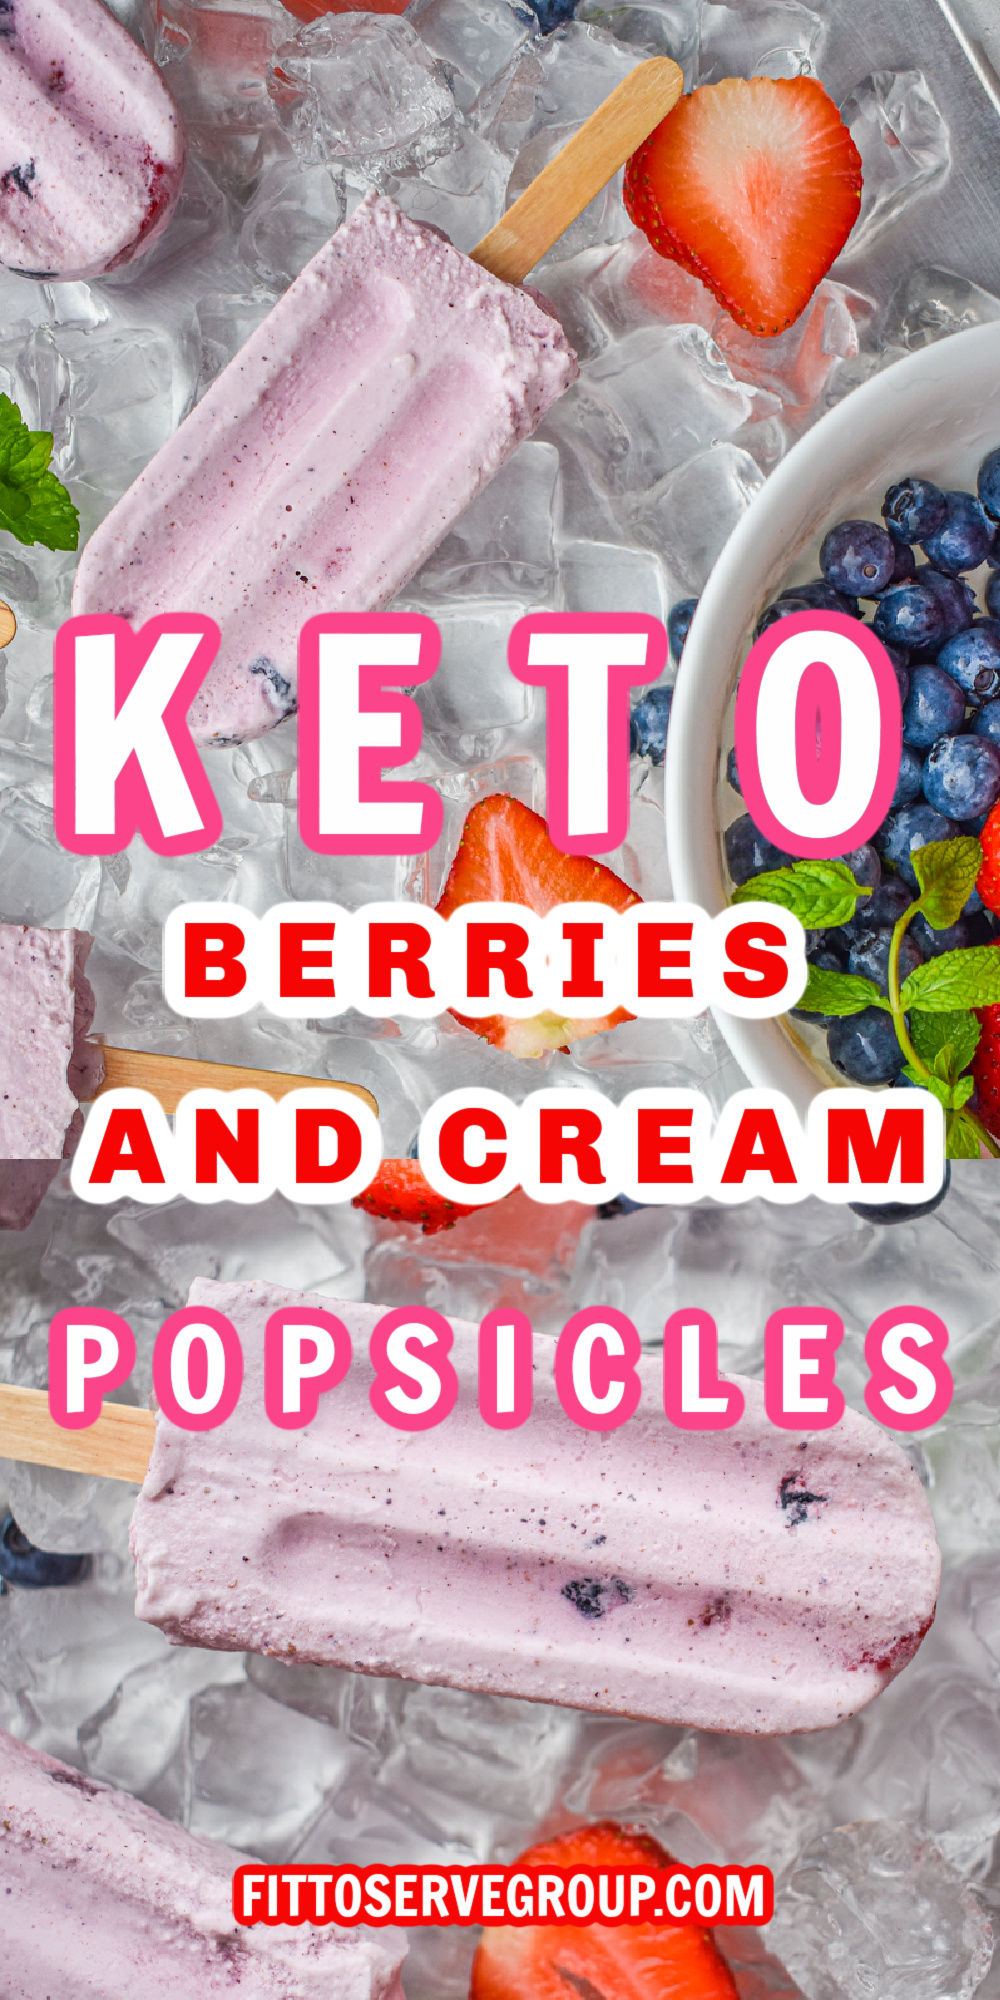 keto berries and cream popsicles